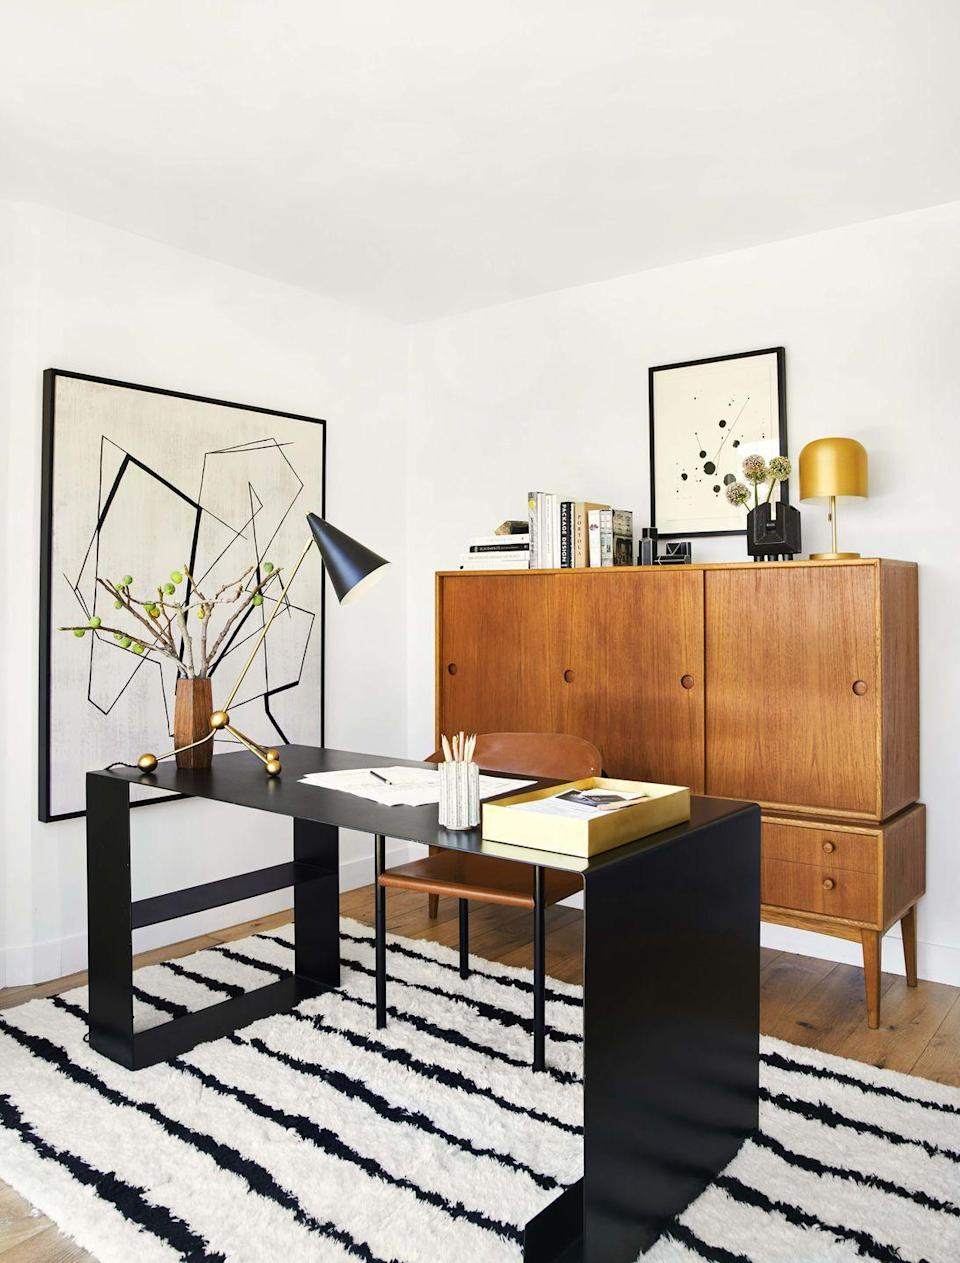 """<p>Tasked with turning a tiny, white-walled bedroom in <a href=""""https://www.housebeautiful.com/design-inspiration/celebrity-homes/a30696940/bobby-berk-home-office/"""" rel=""""nofollow noopener"""" target=""""_blank"""" data-ylk=""""slk:Bobby Berk's Los Angeles home"""" class=""""link rapid-noclick-resp"""">Bobby Berk's Los Angeles home</a> into a proper home office, creative director Brady Tolbert headed to Craigslist to find the perfect mid-century credenza. It's not just all looks—the cabinet keeps messy papers out of sight.</p>"""